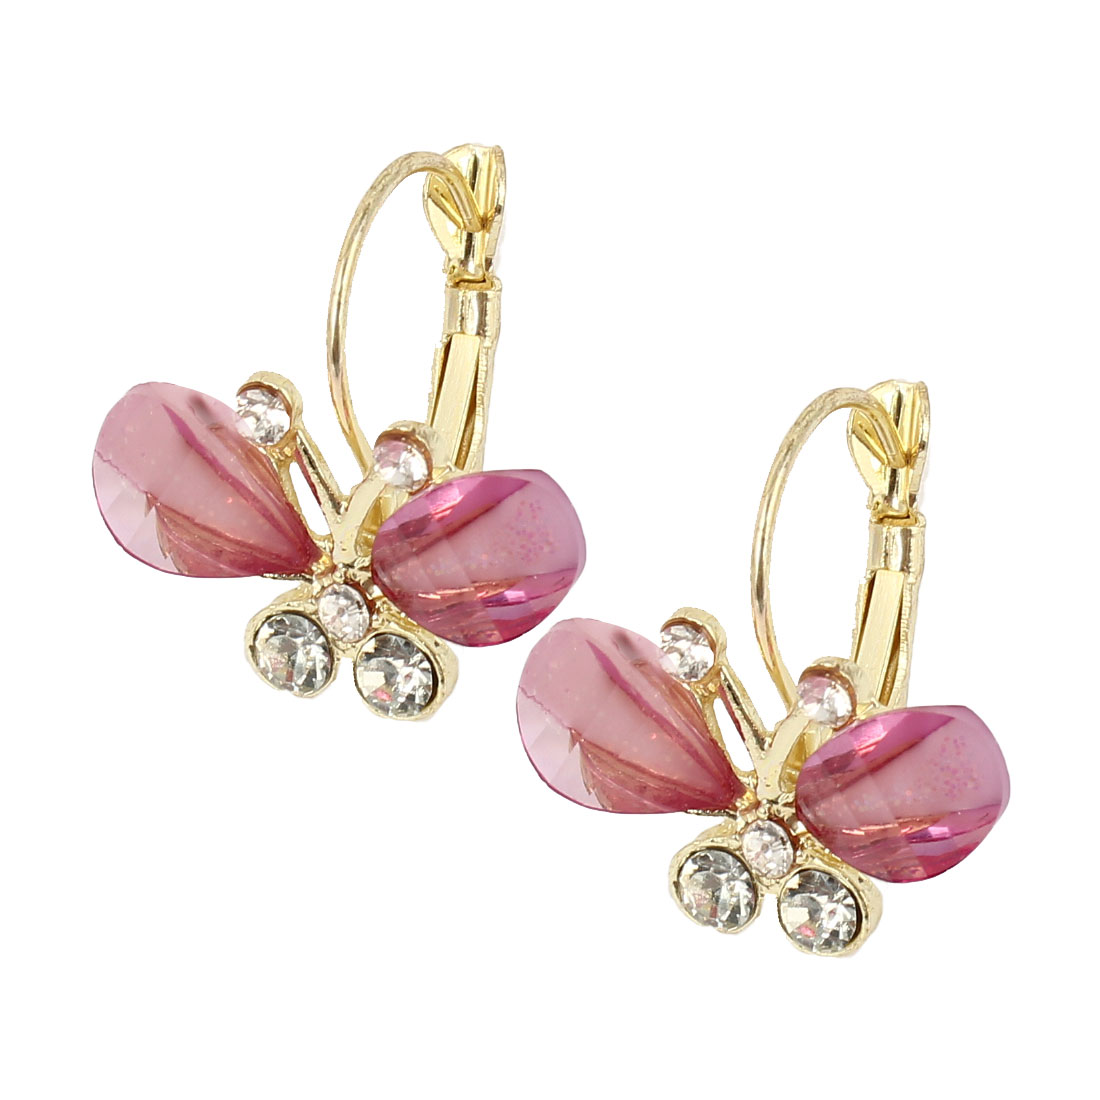 Clear Pink Butterfly Shaped Rhinestone Inlaid French Clip Earrings Pair for Lady